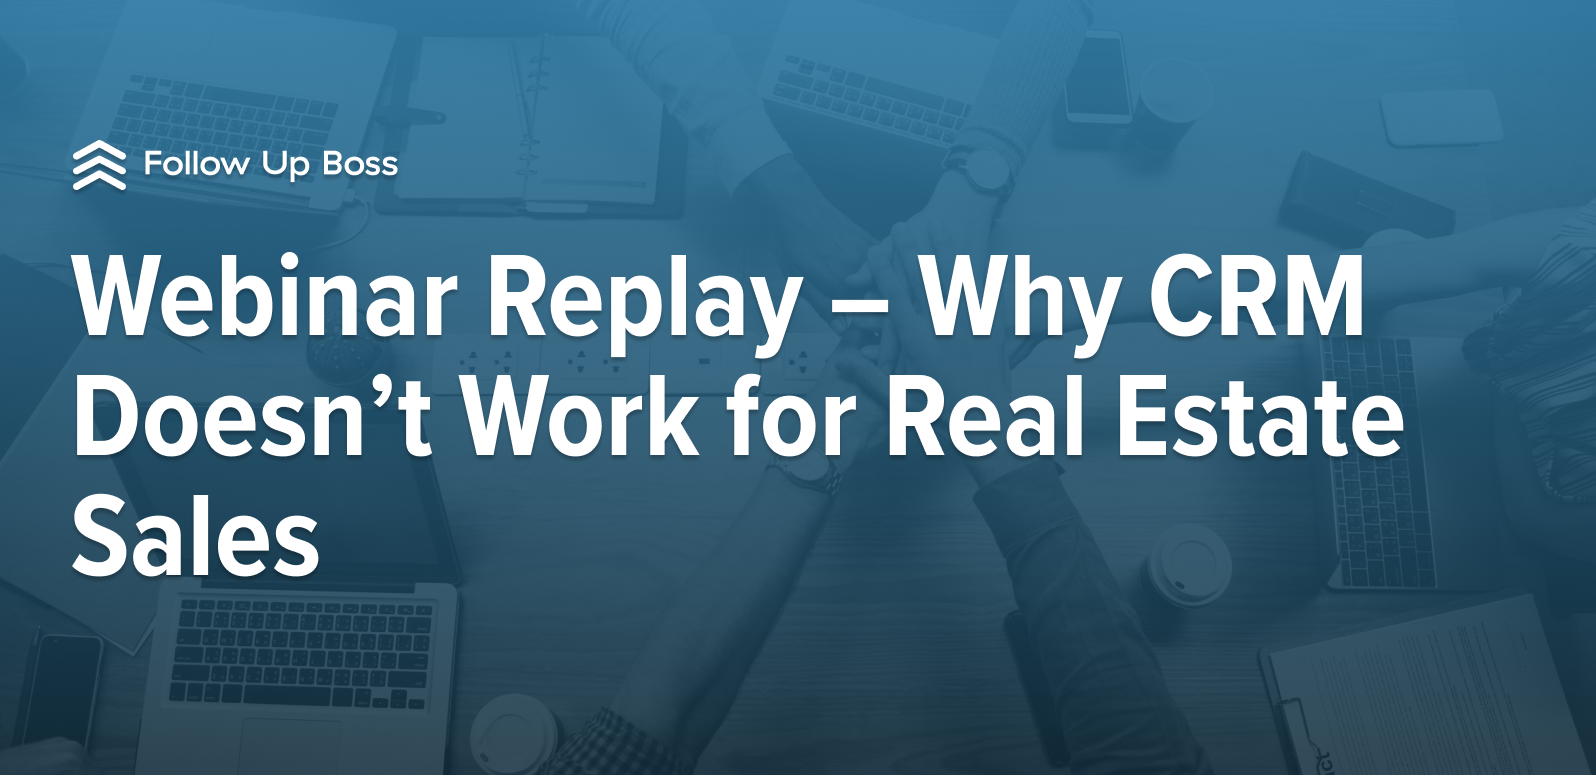 Webinar Replay – Why CRM Doesn't Work for Real Estate Sales